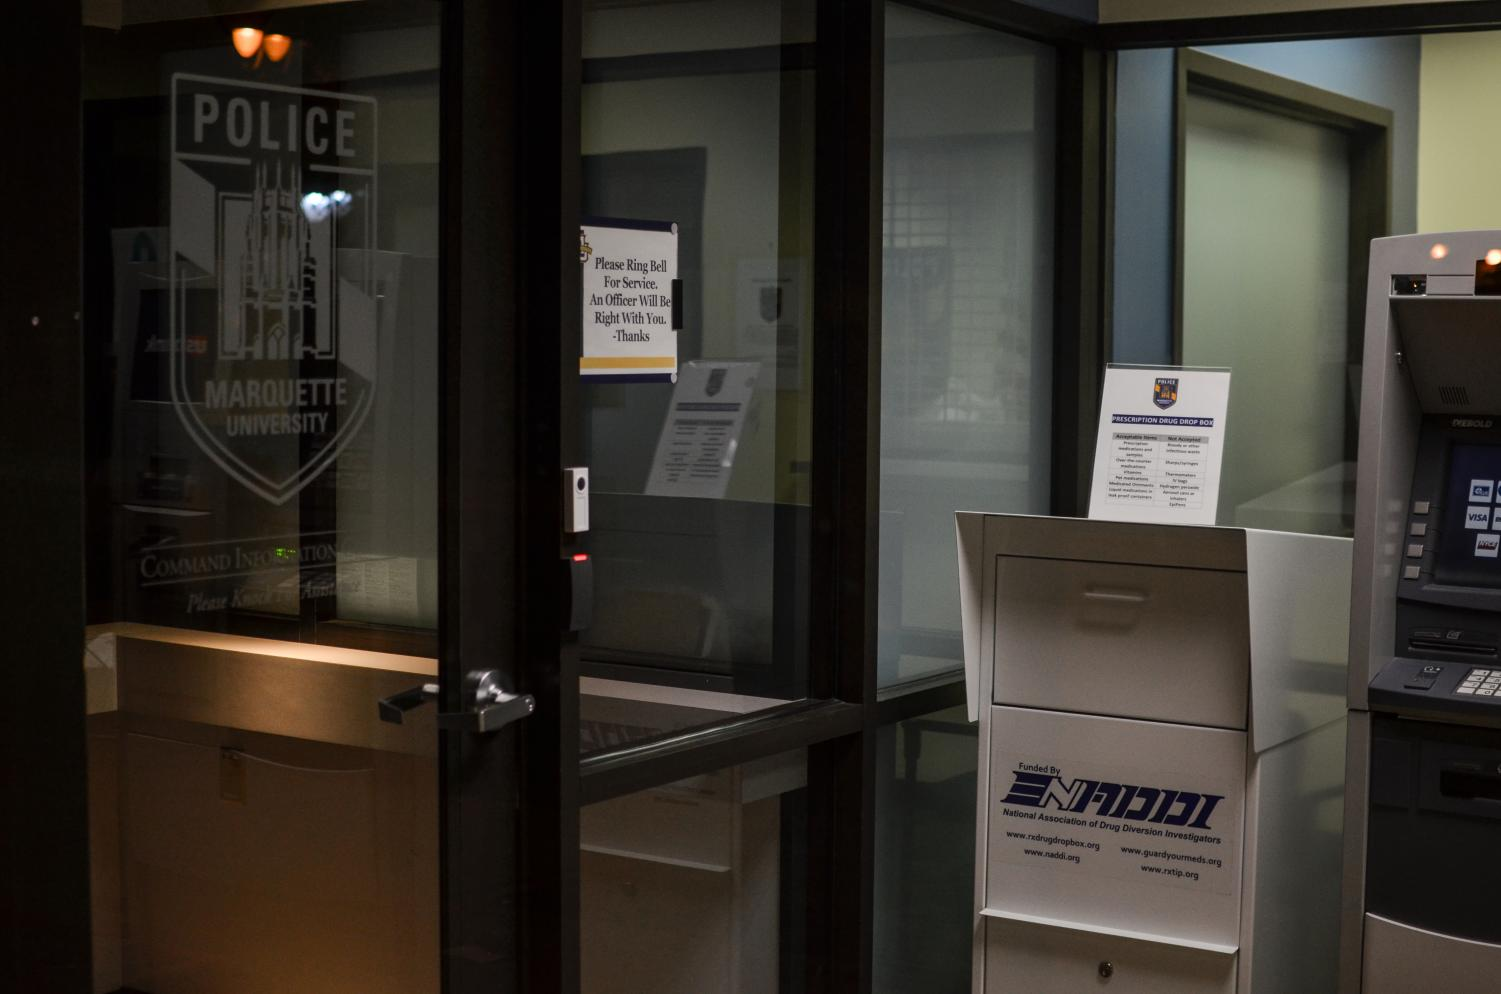 MUPD installed a prescription drug drop box outside their office.